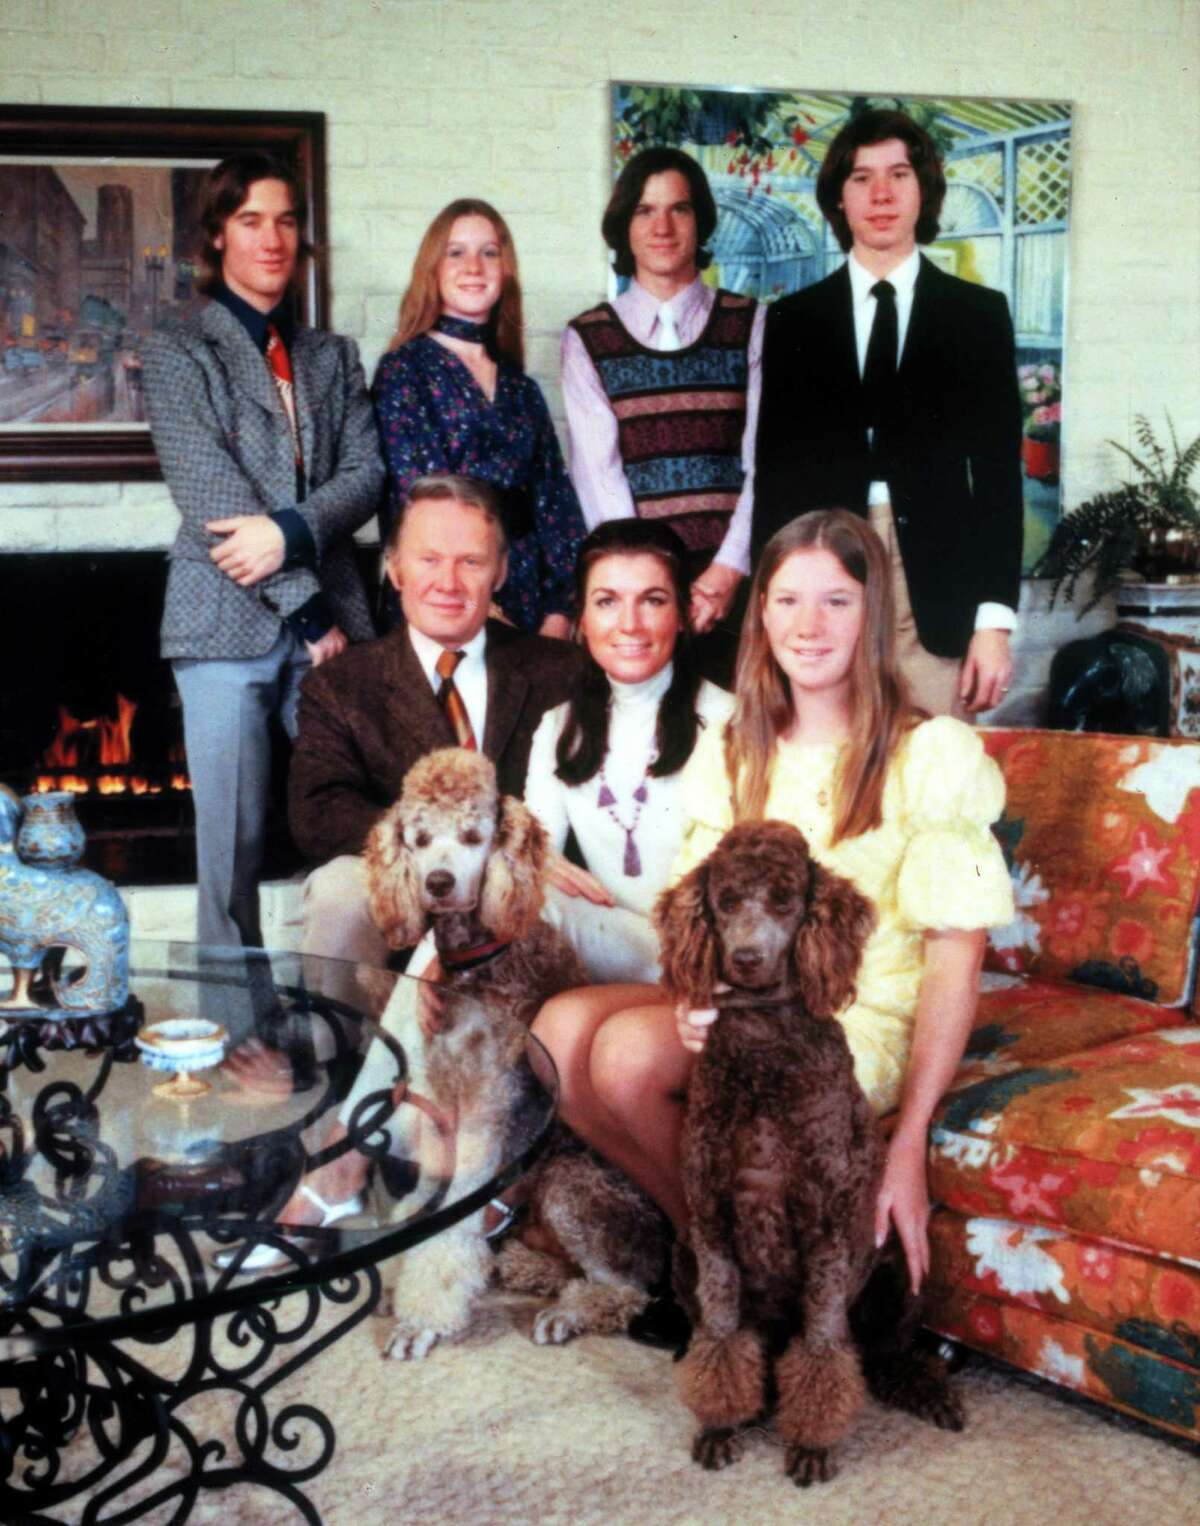 The Louds, 'An American Family' (1973) Two of the members of the Loud family - immortalized in the PBS documentary series